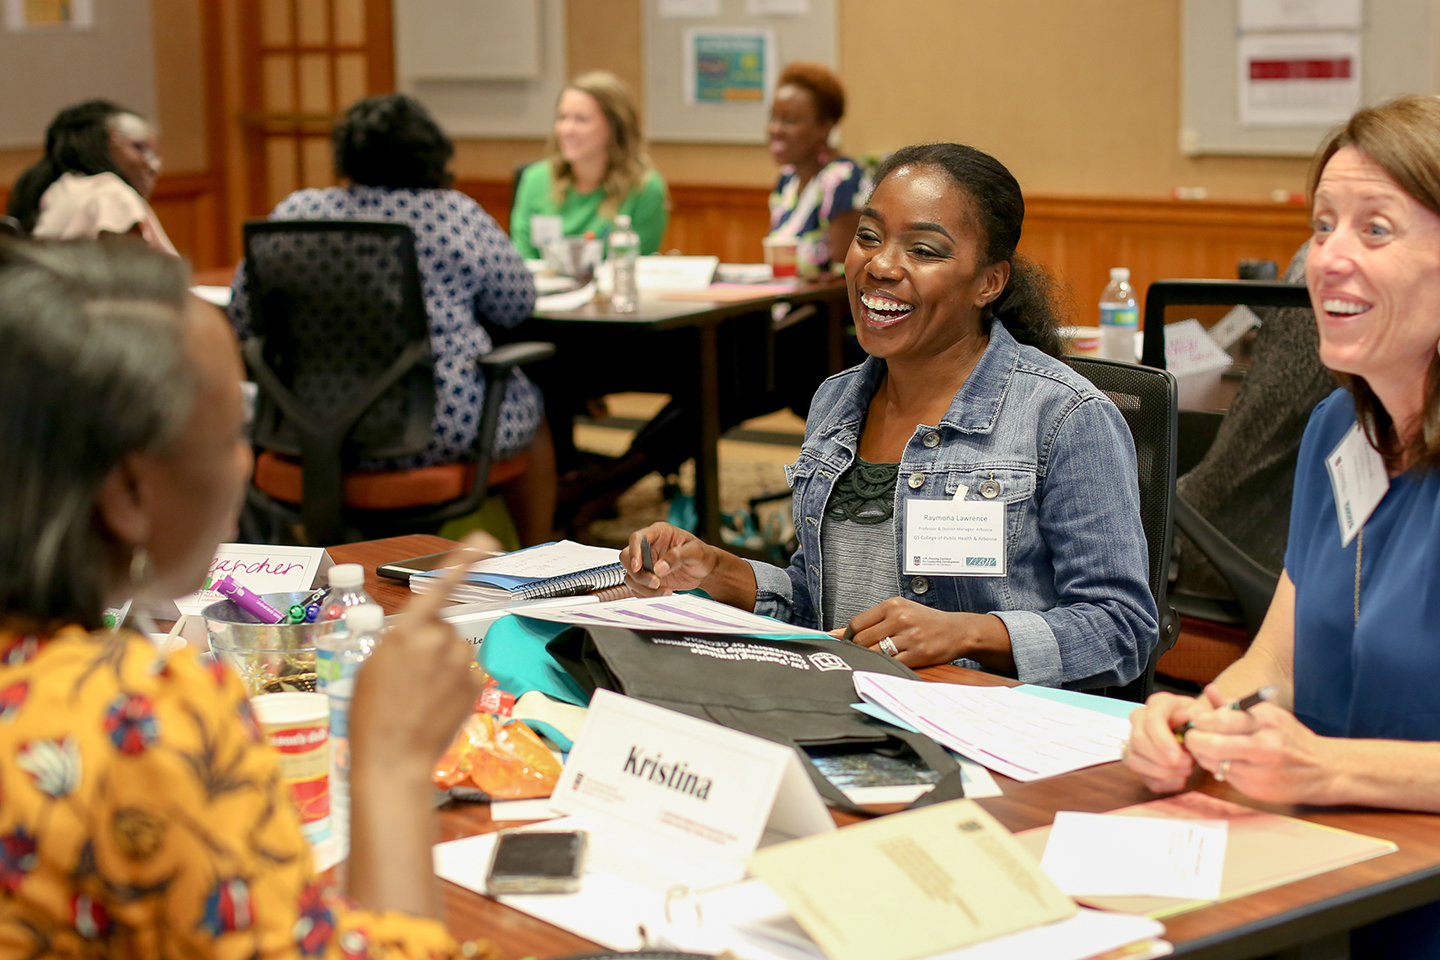 Women talk together at a table during a leadership session